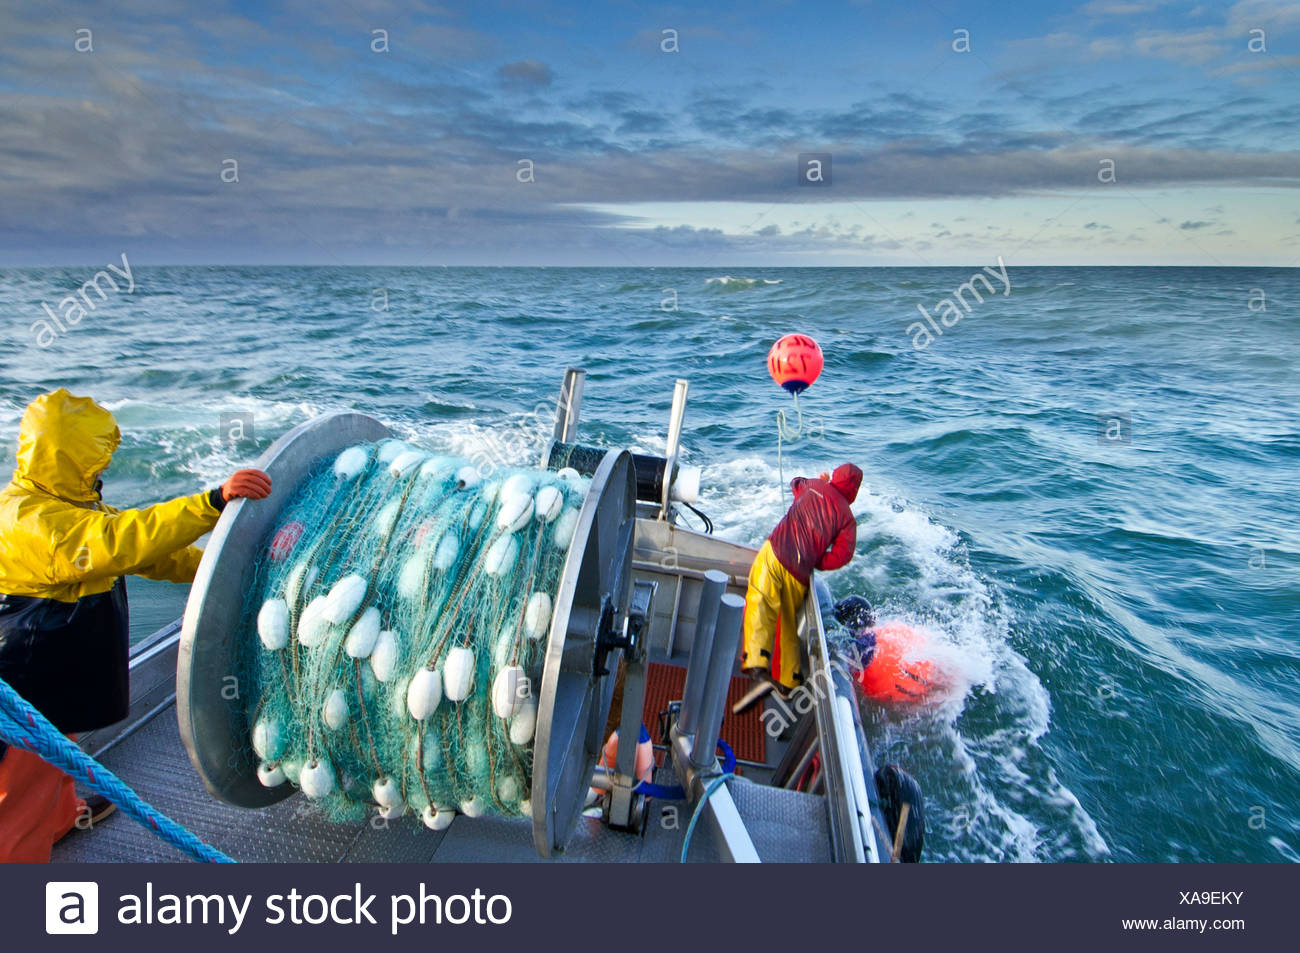 The crew casts out the first set of a gillnet in Ugashik Bay, Bristol Bay region, Southwest Alaska, Summer - Stock Image